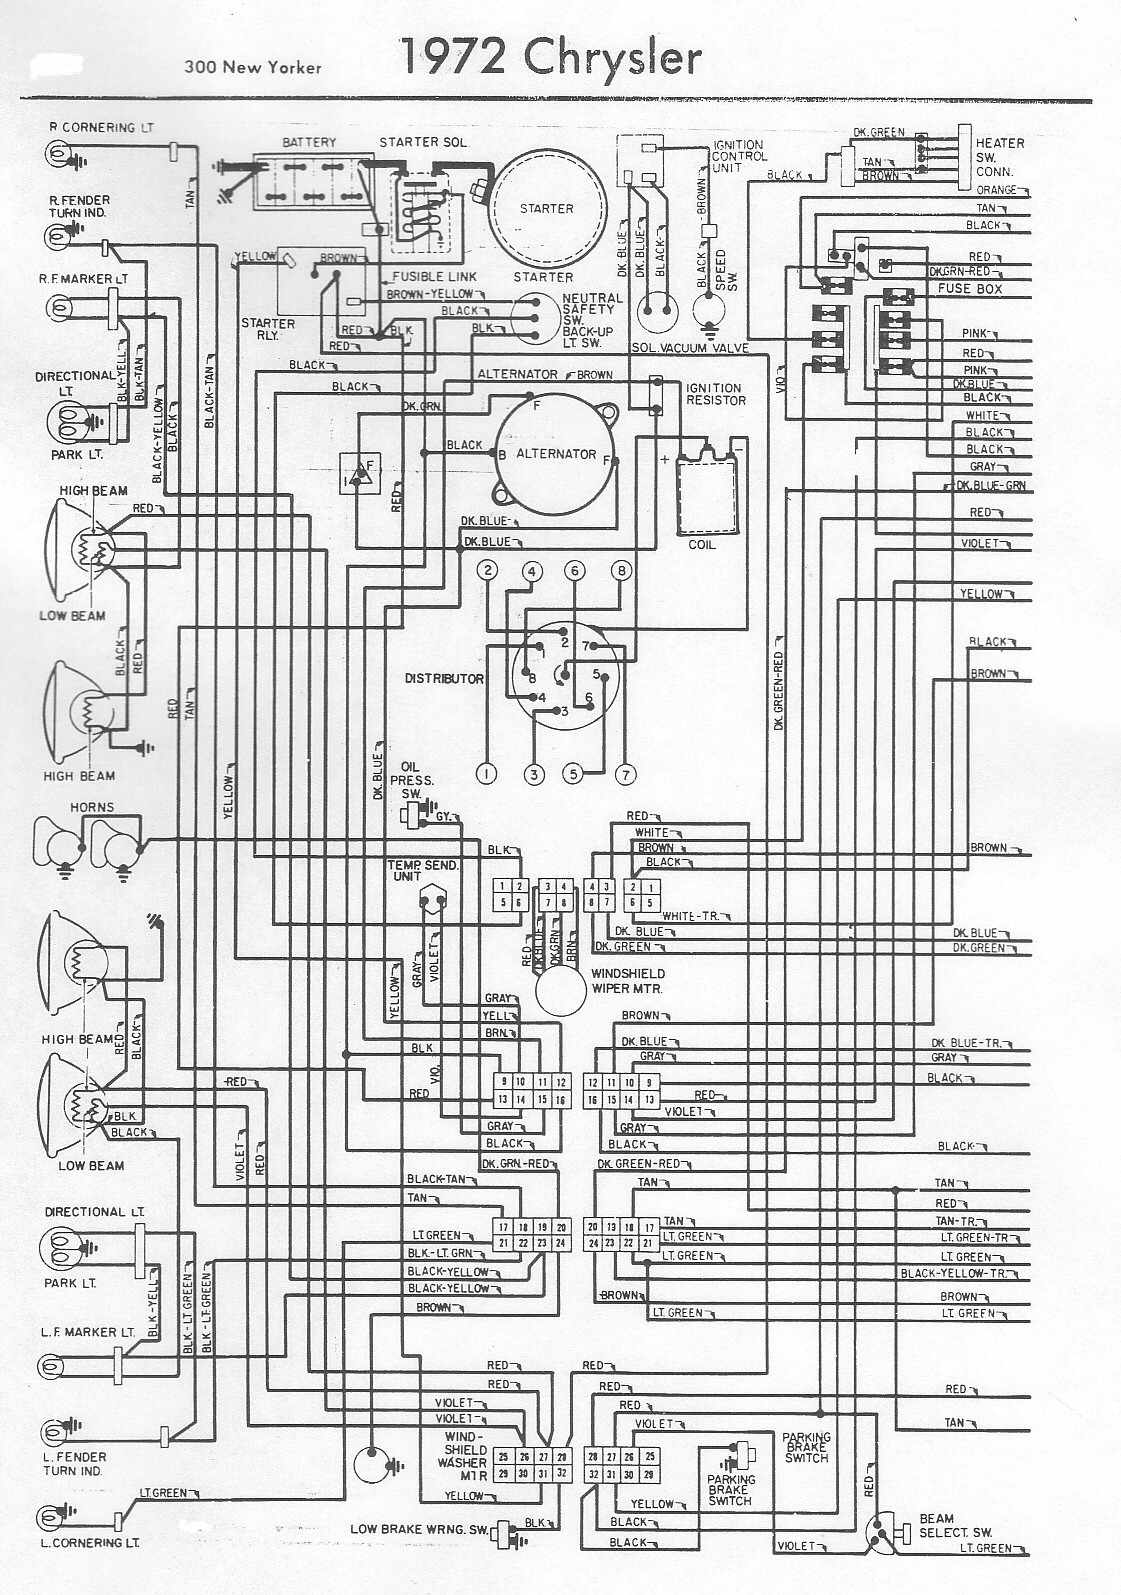 1950-chrysler-windsor-ignition-wiring-diagram-12  Chrysler New Yorker Wiring Diagram on electronic ignition starter relay, crossfire infinity speaker, sebring convertible, radio harness, sebring power window, infinity amp, pacifica radio, radio p04858556ac, rear view mirror,